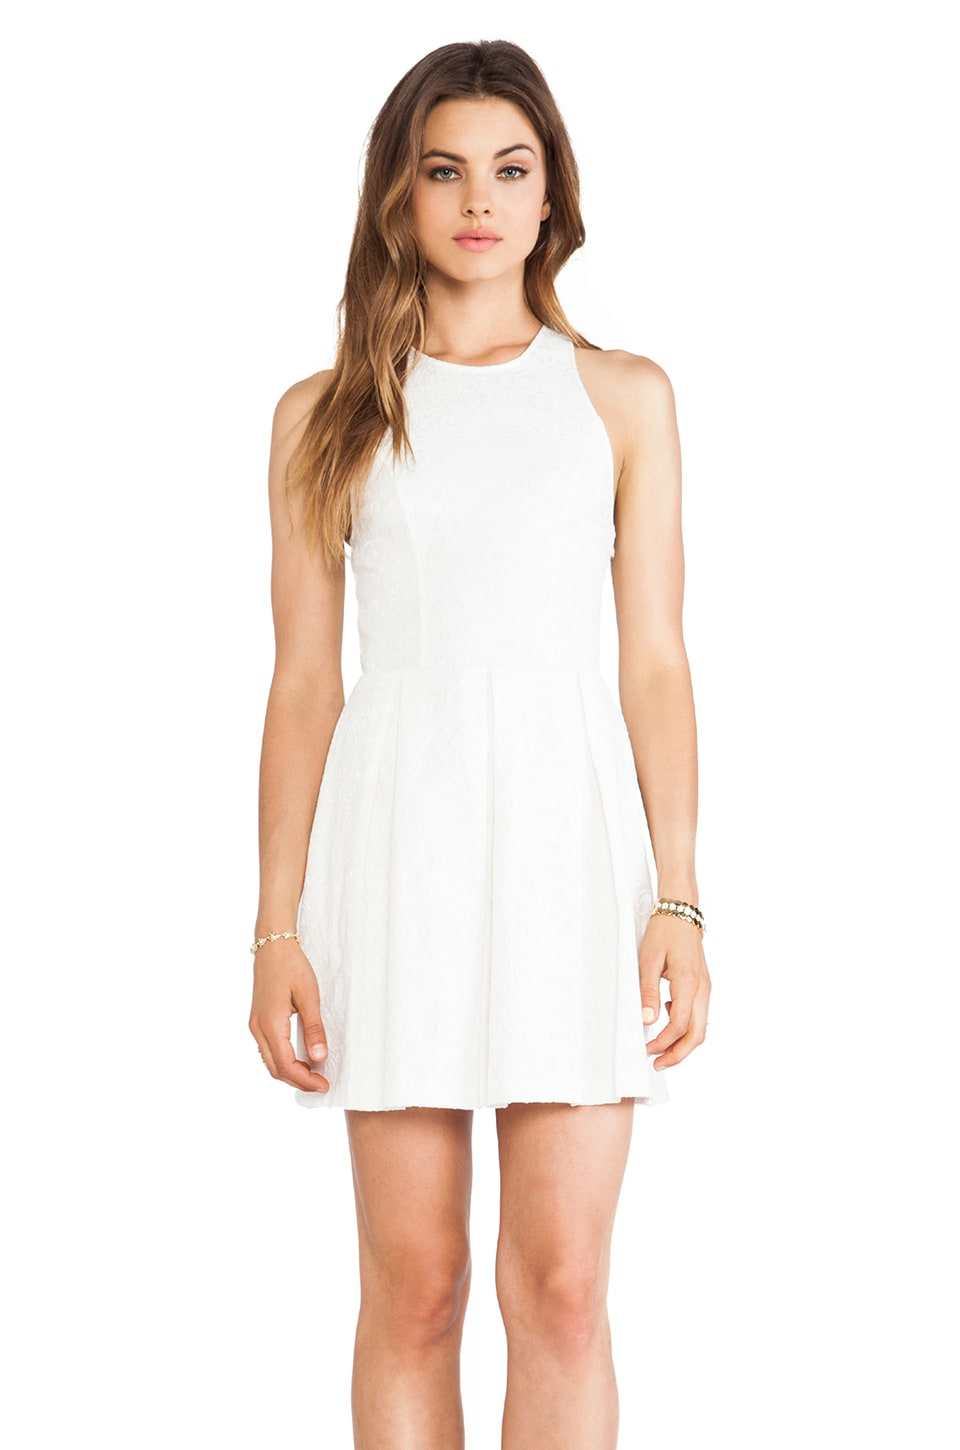 Dolce Vita Alda Dress in Cream